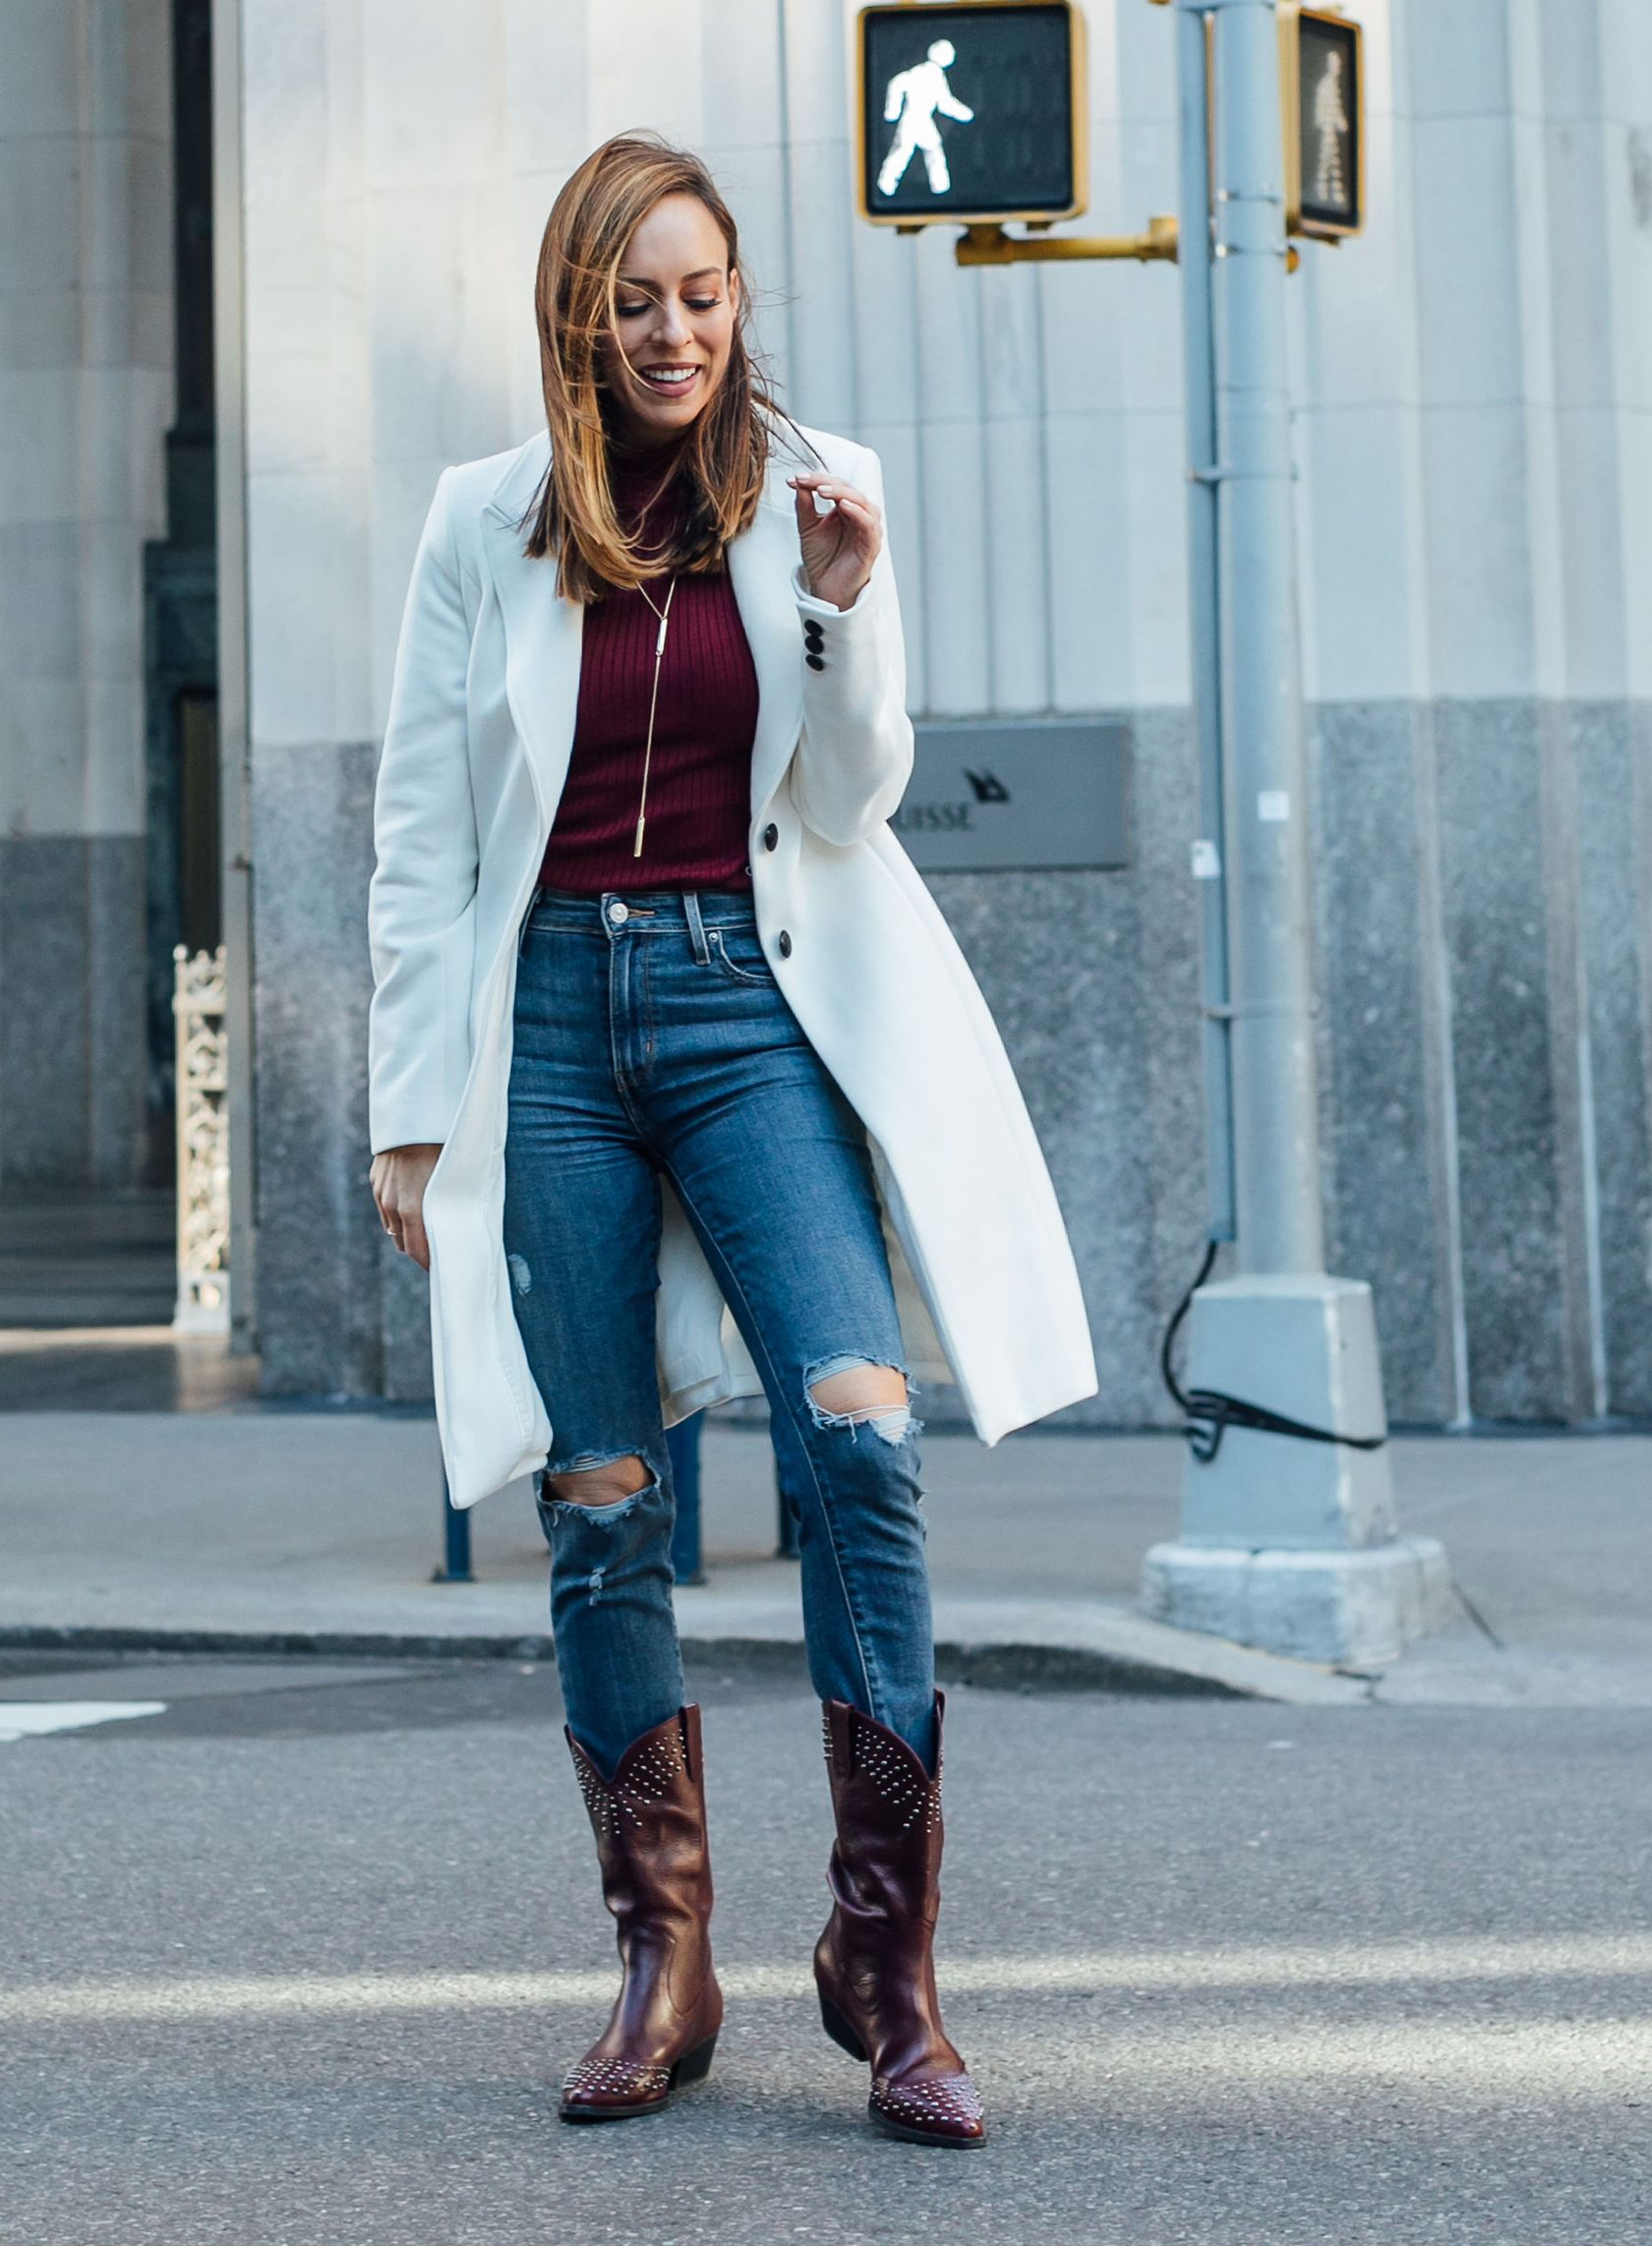 ef8d4b5cd9 Sydne Style shows what to wear with a white coat  coats  jeans  boots   cowboyboots  sydnesummer